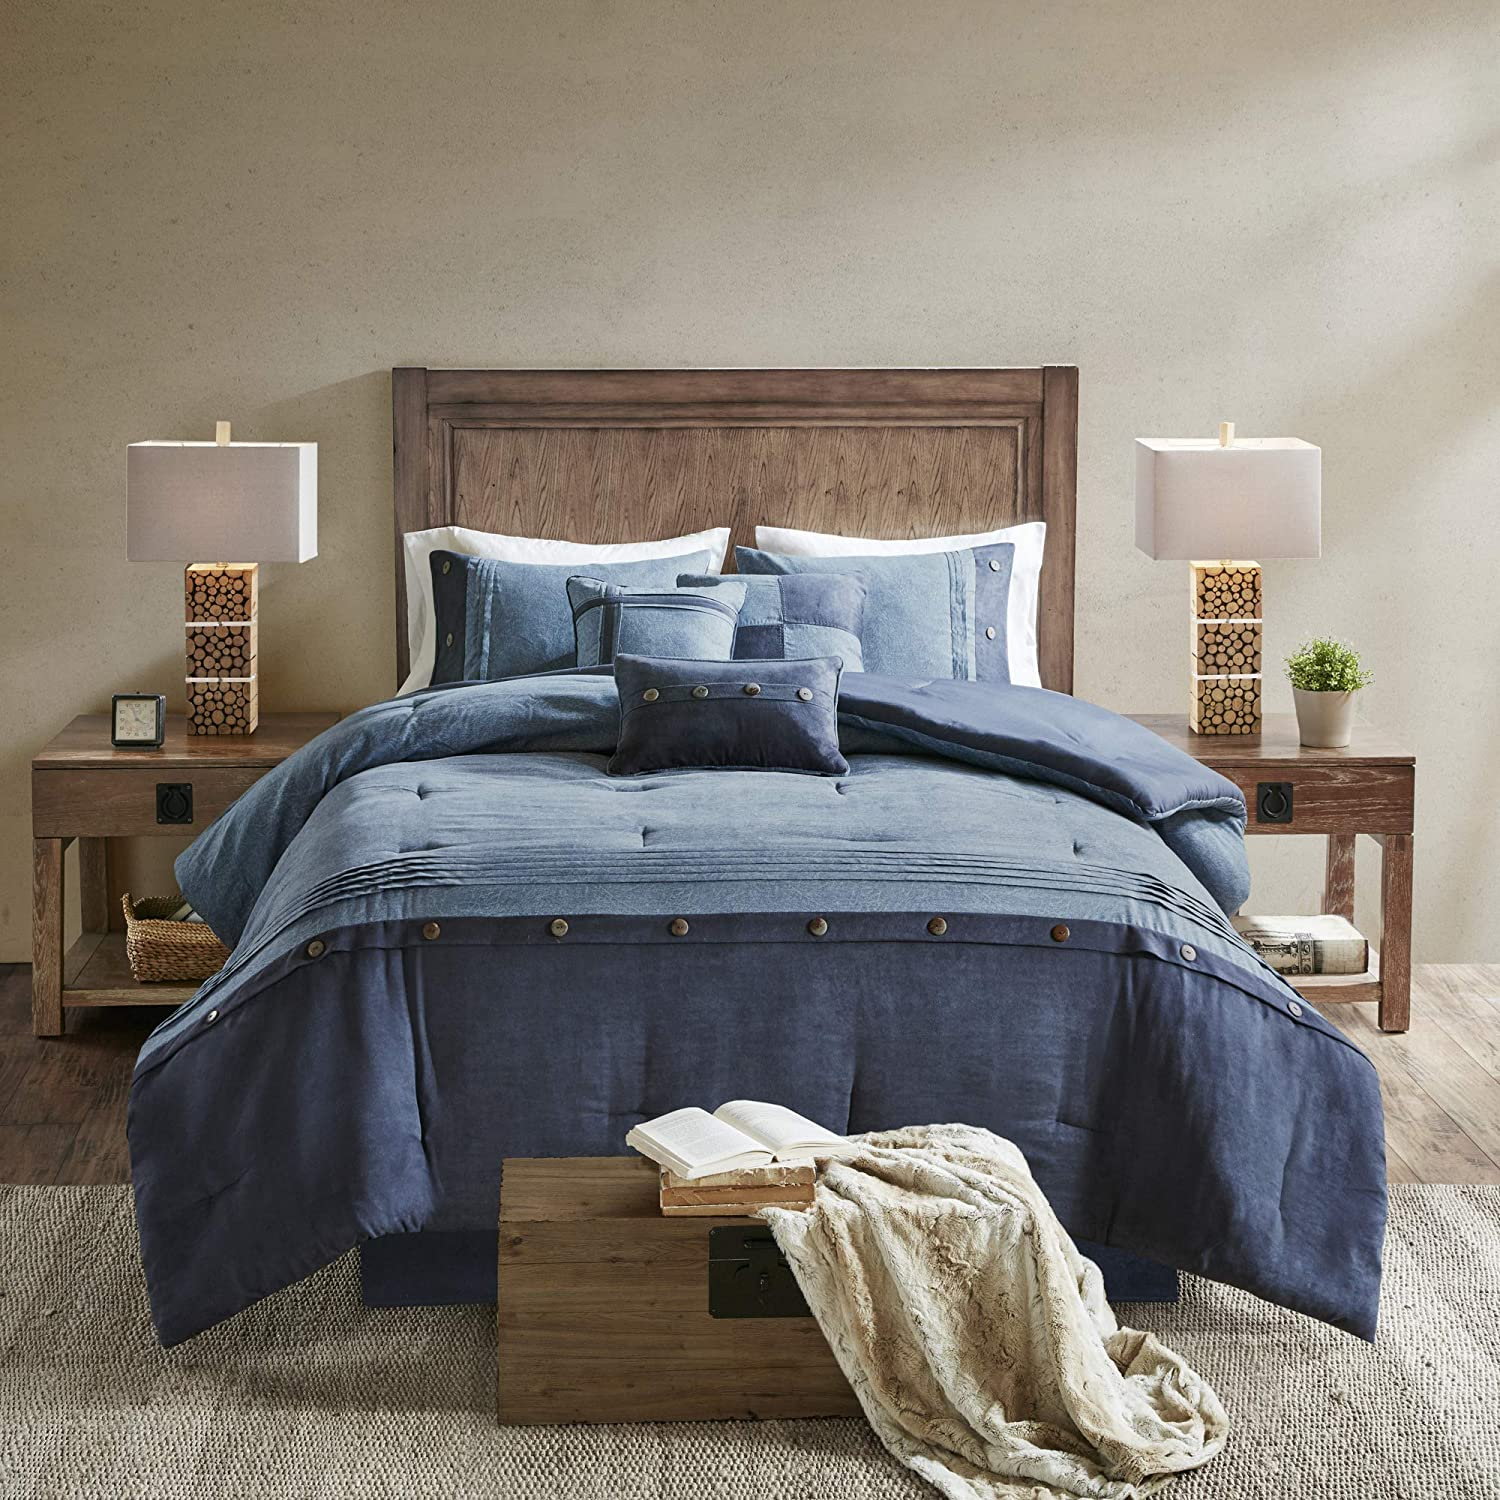 Madison Park Boone Comforter Set-Rustic Cabin Lodge Faux Suede Design All Season Down Alternative Cozy Bedding with Matching Bedskirt, Shams, Decorative Pillow, Cal King(104